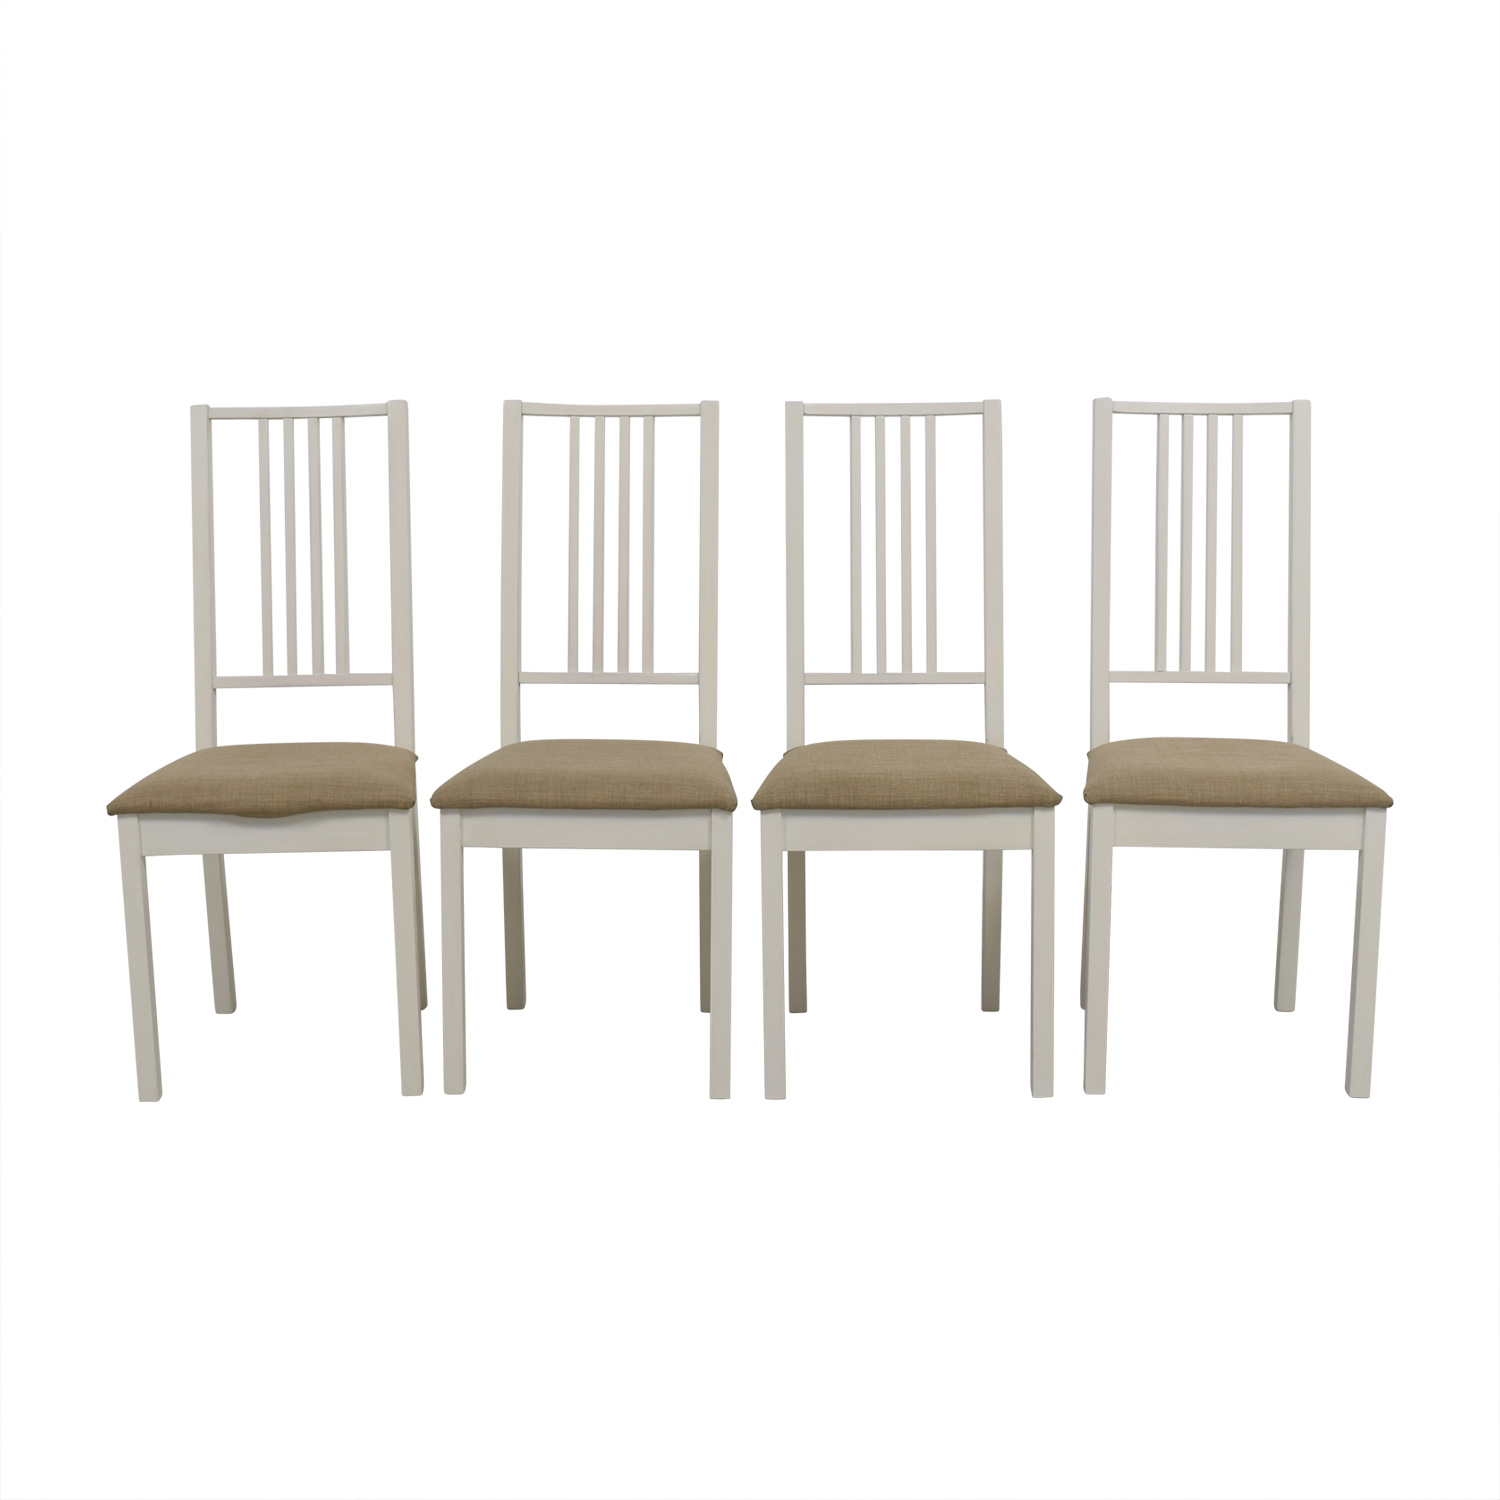 53 off ikea ikea white with tan upholstered dining chairs chairs Dining bench ikea